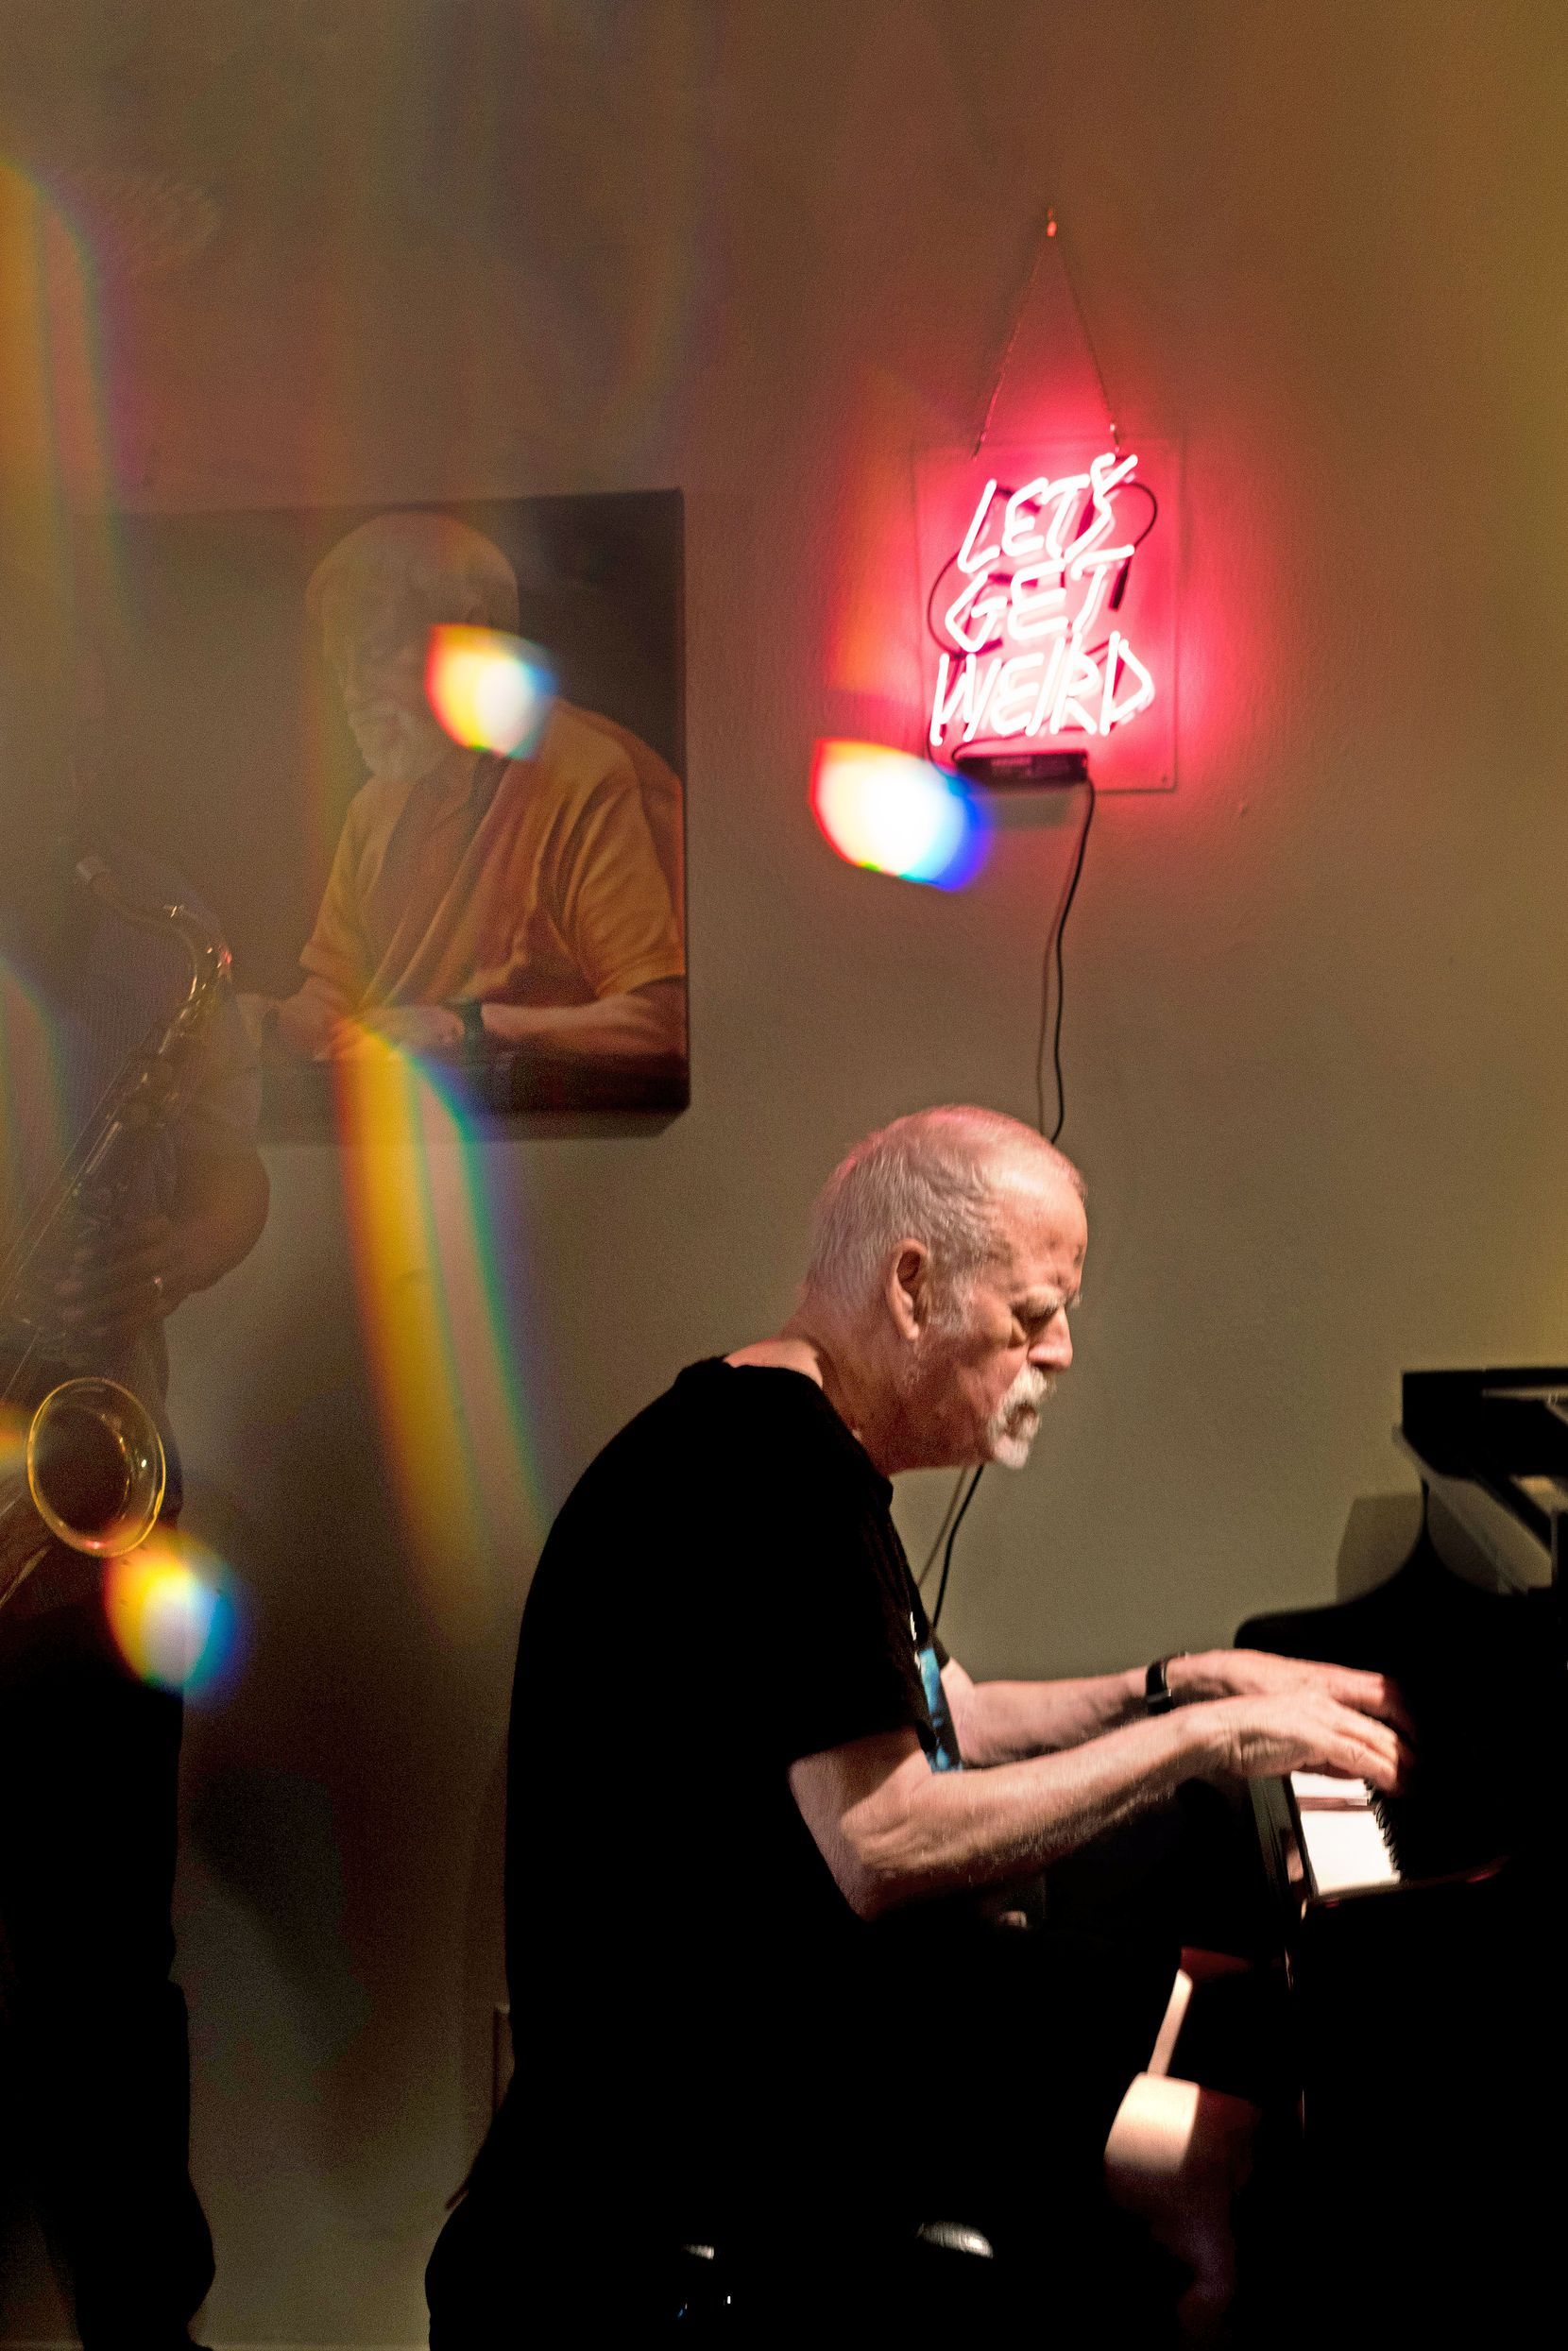 A photo taken through a prism shows Dave Zoller playing piano in his living room on Friday, August 14, 2020 in Dallas.